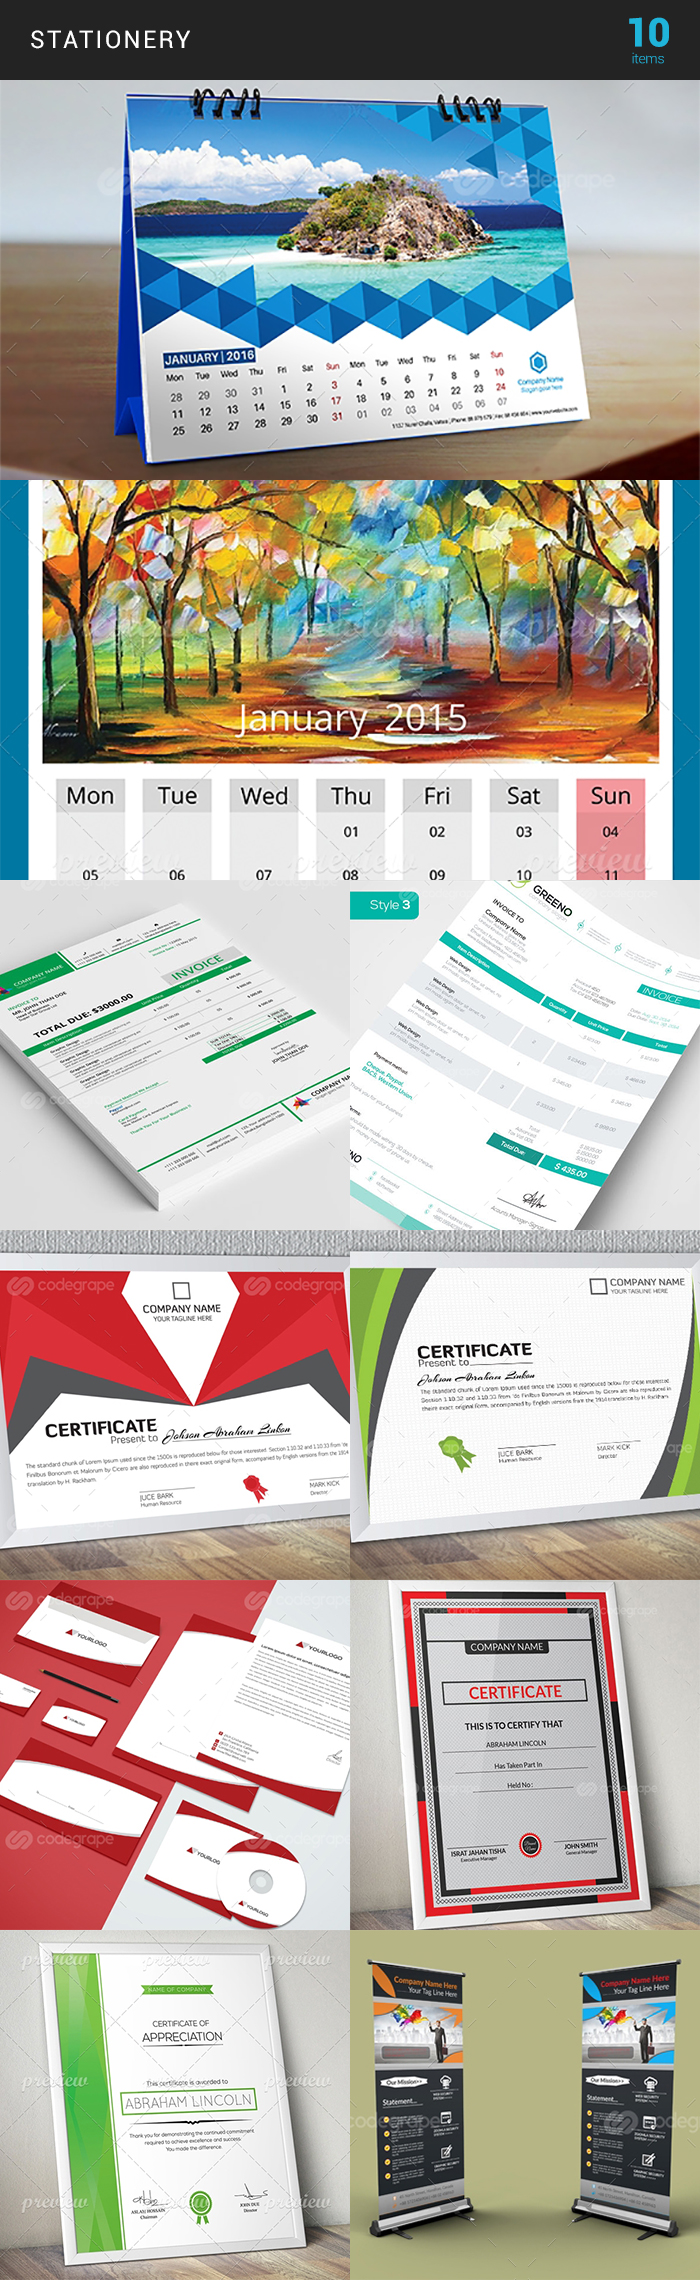 Elegant Print Templates Bundle with 100 Items - Only $19 - stationery